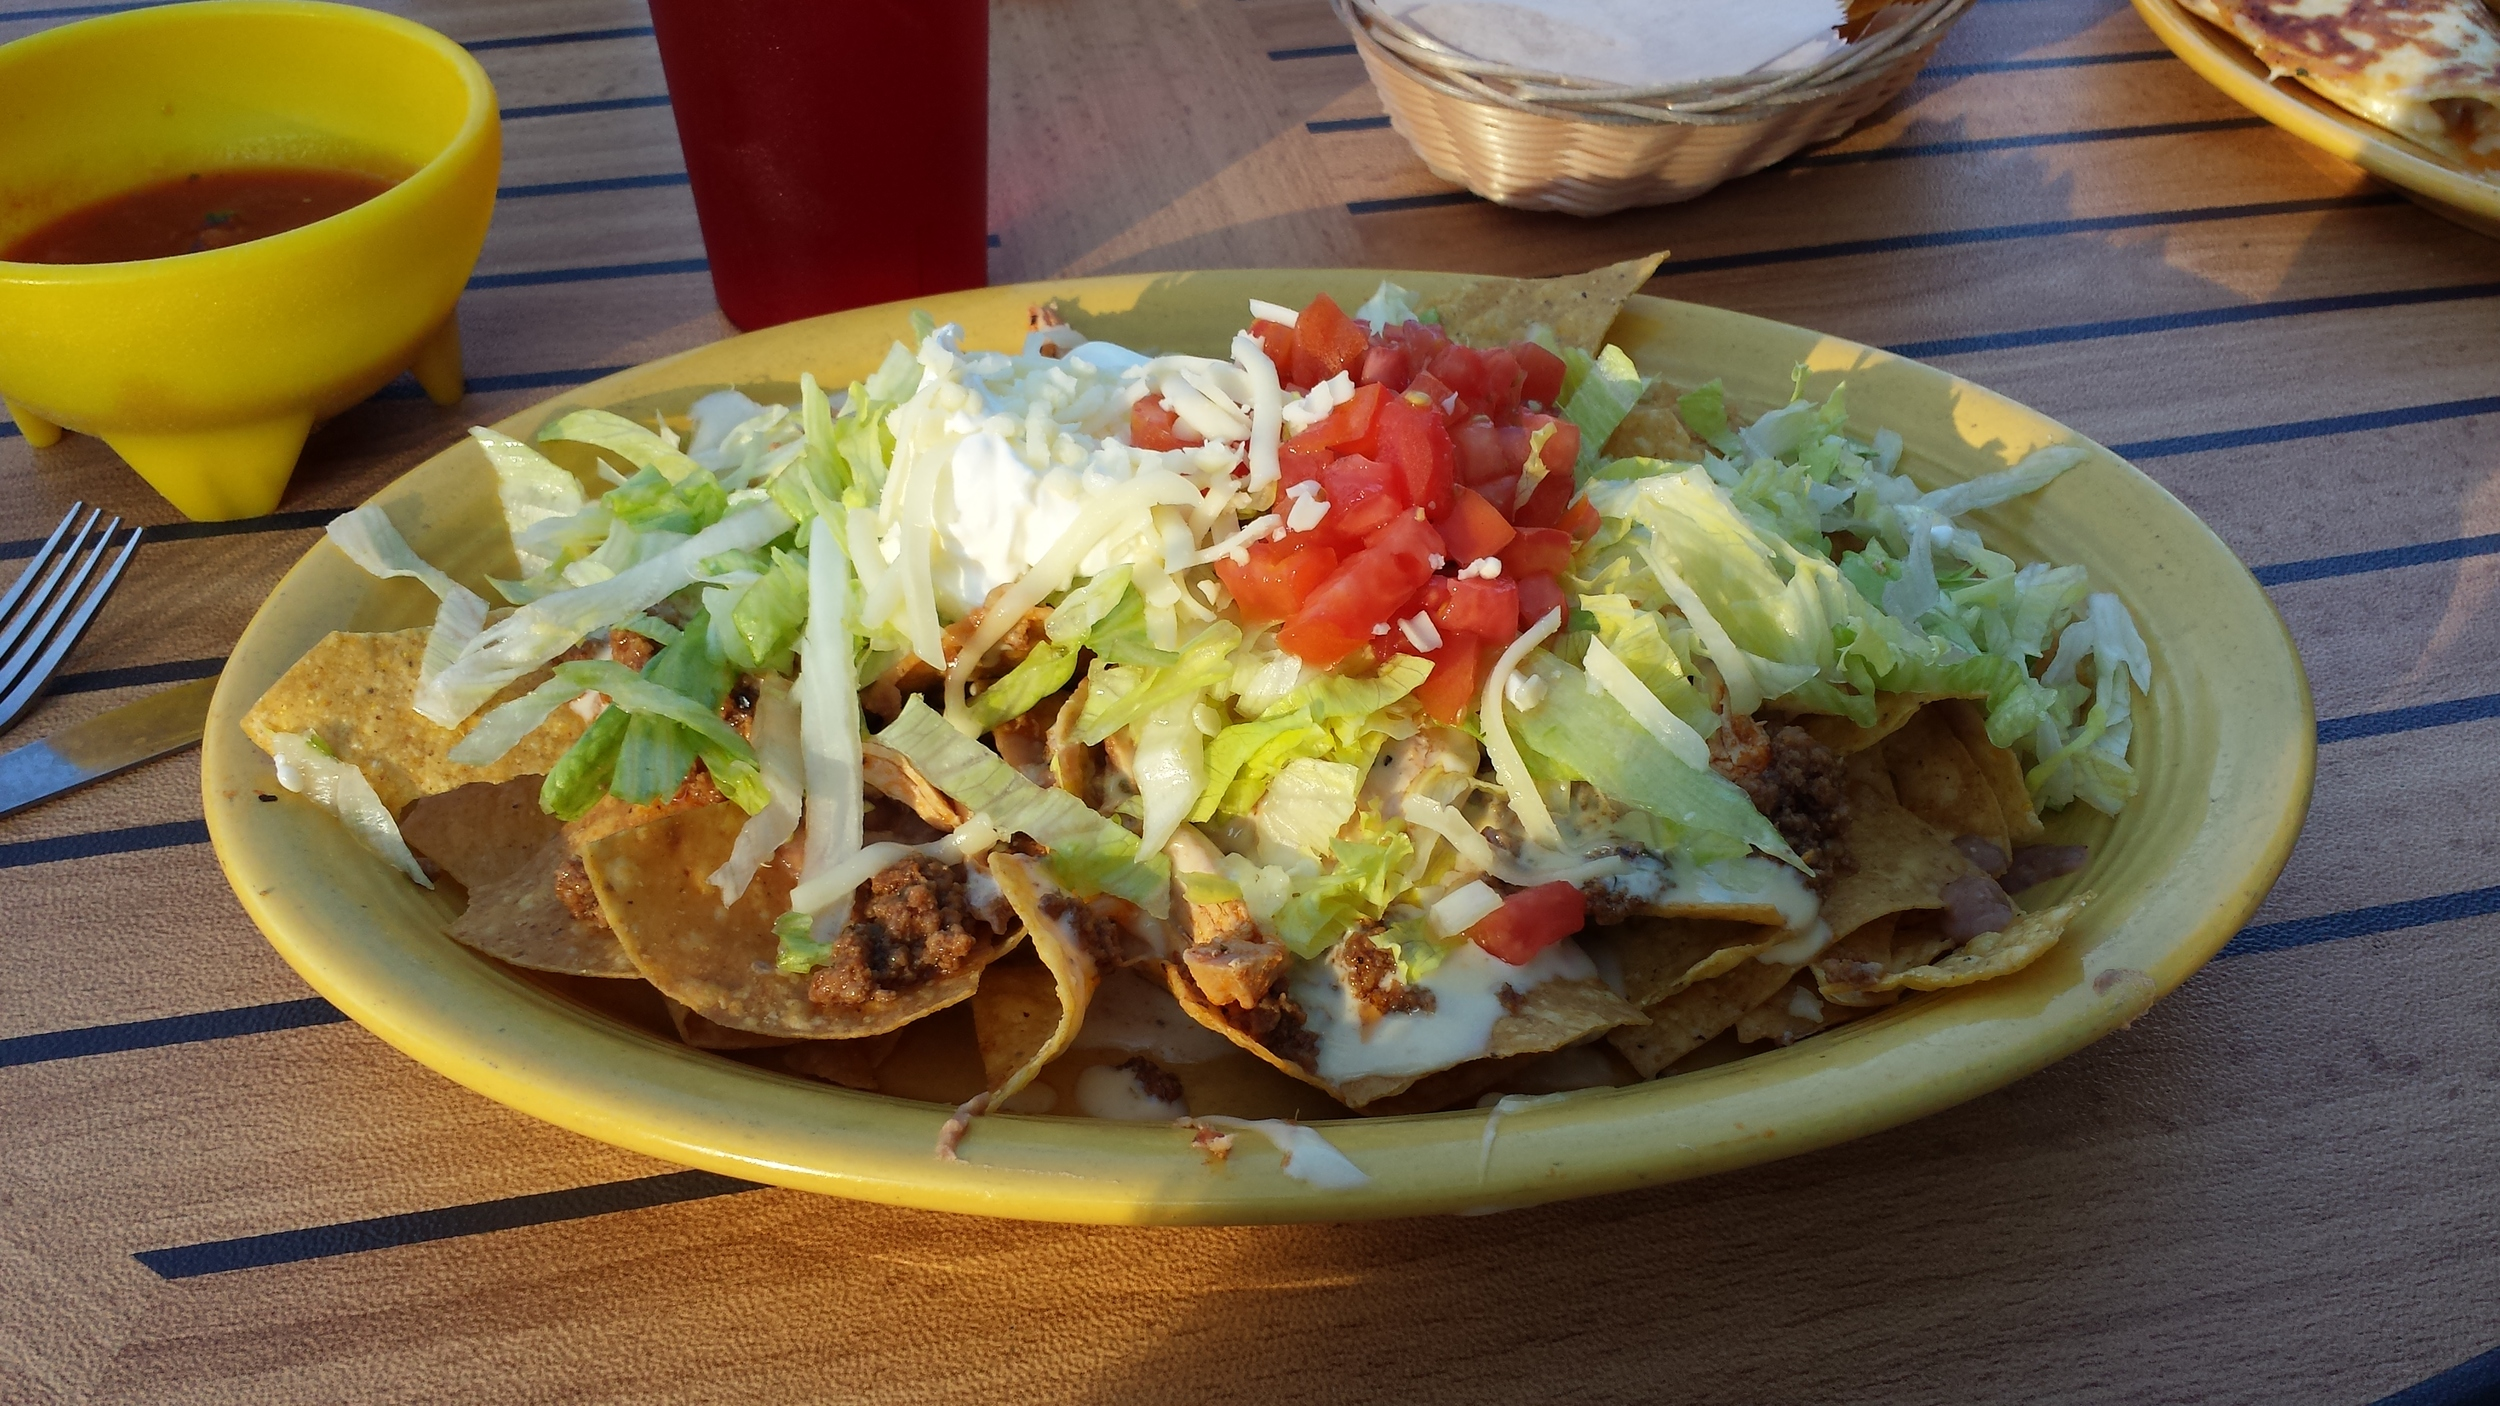 Beef, Chicken, Refried Beans, Shredded Cheese, Queso, Lettuce, Tomatoes, Sour Cream